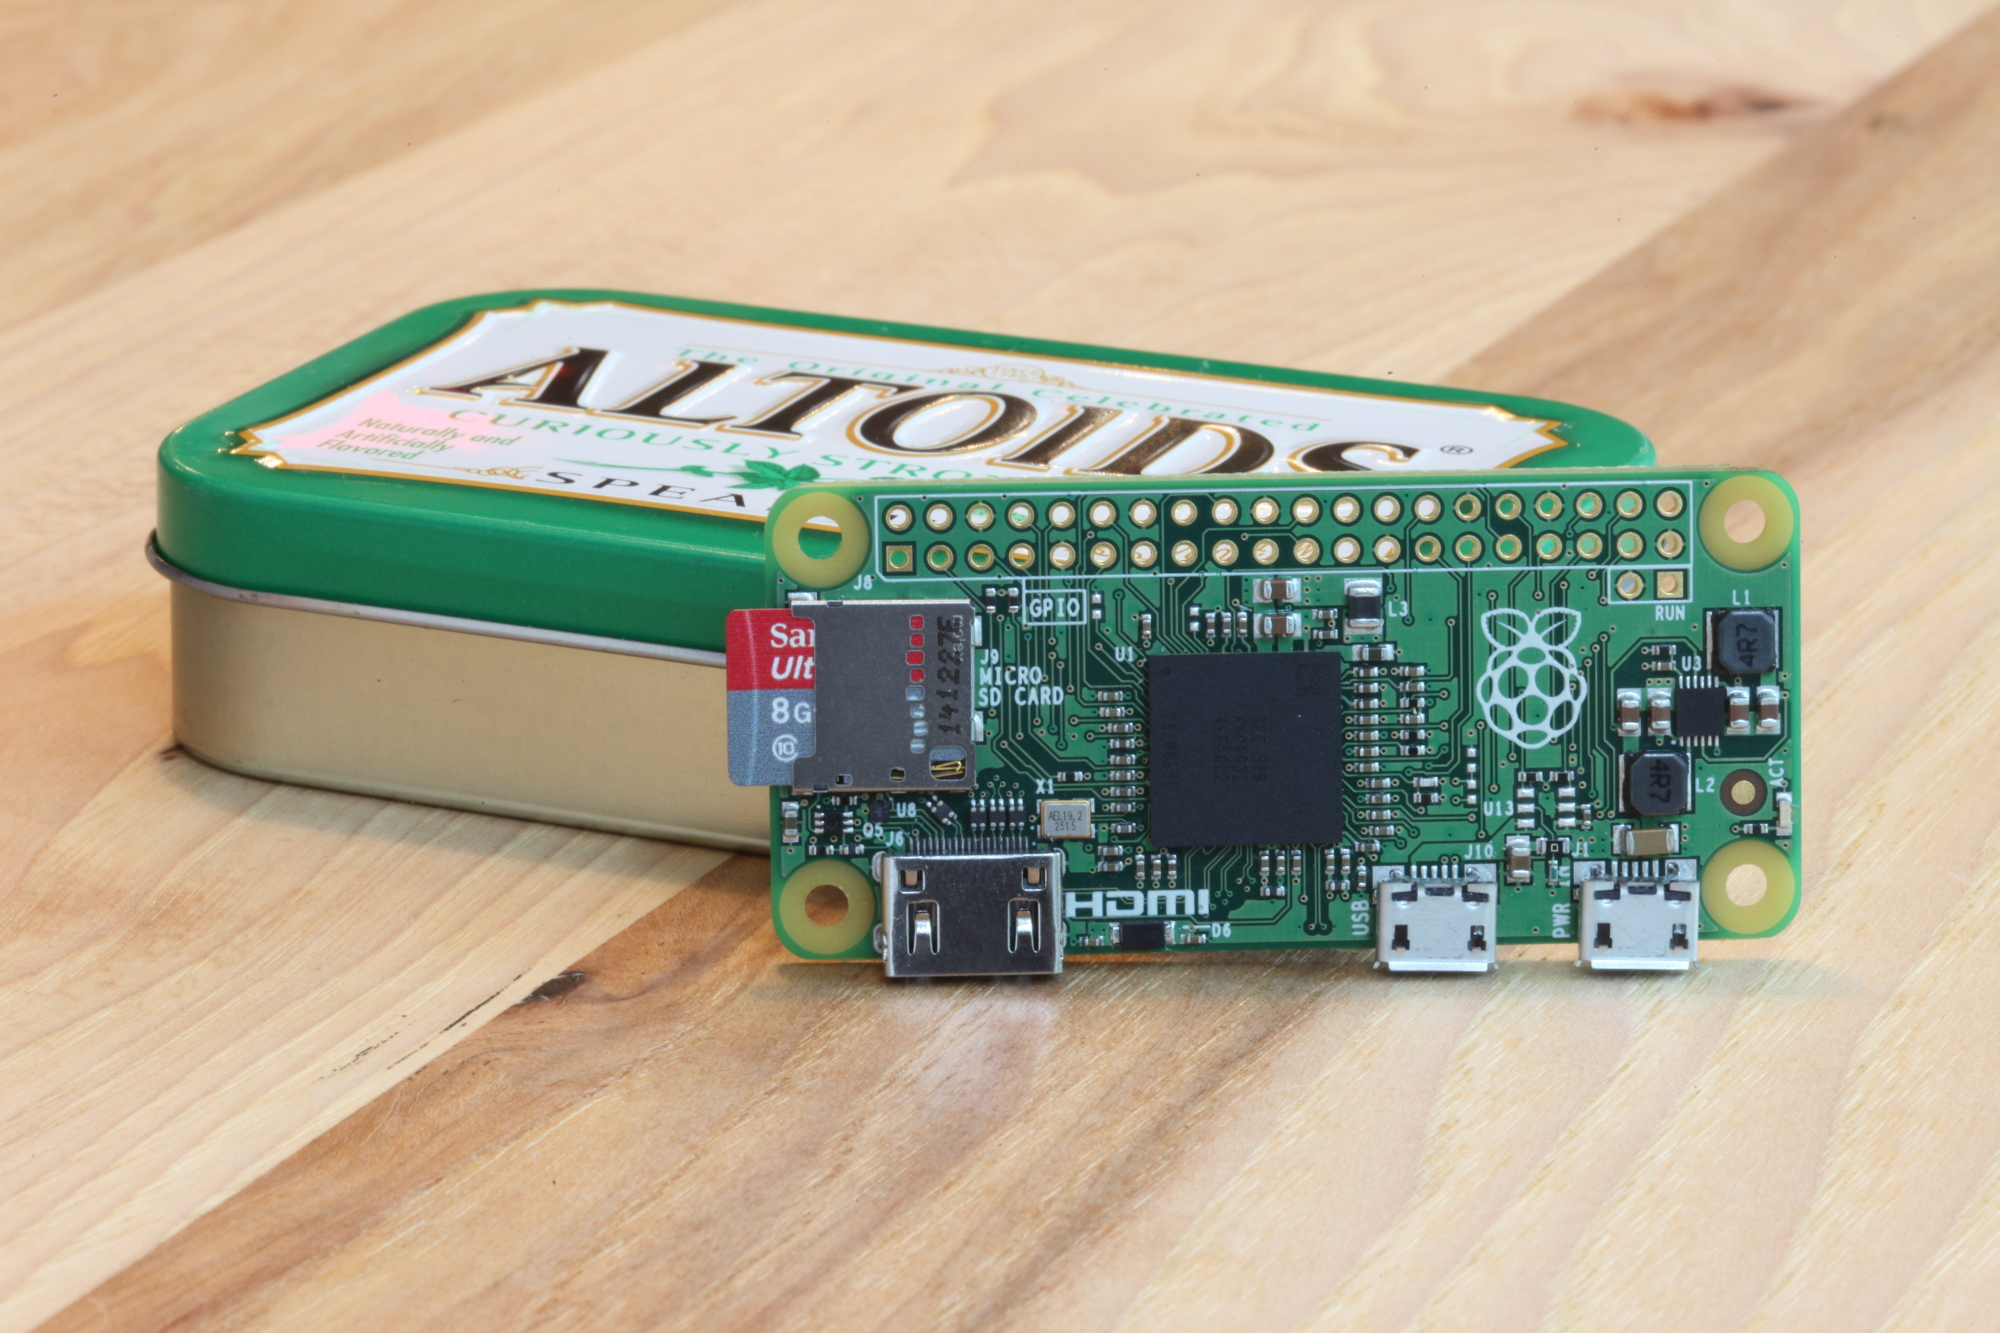 Raspberry Pi Zero Out Today Get It Free With The Magpi 40 together with Multi Assembly Plug 2 5mm 5 1358126472 besides Sound Advice Audio Cables Connectors Examined moreover 190532548257 additionally Hook 4 Steps Building Habit Forming Products. on phone plug types